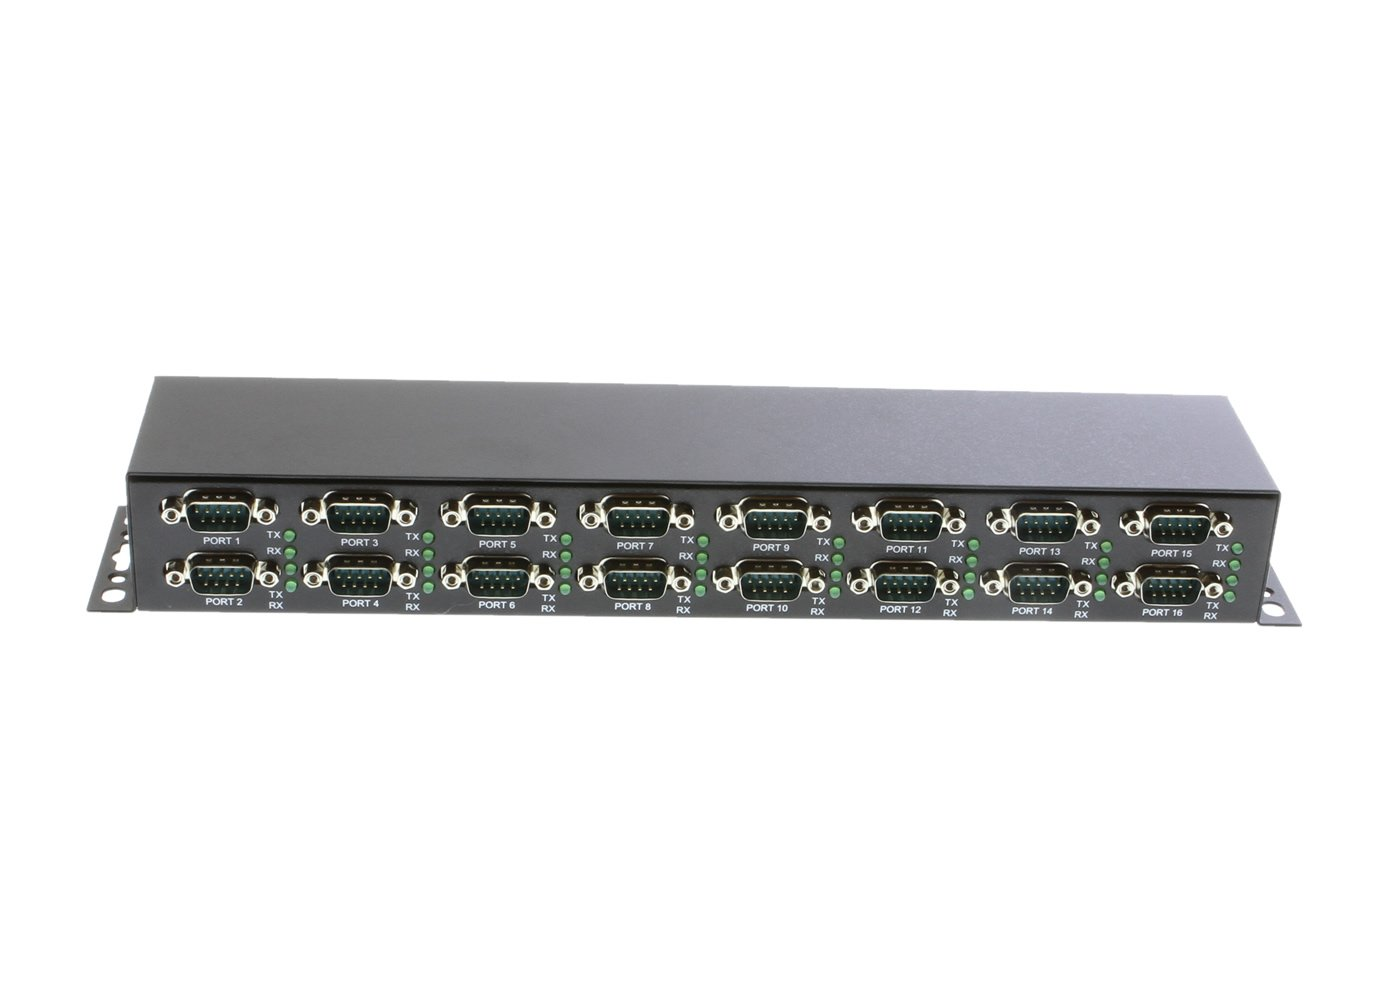 Coolgear 16-Port Industrial RS232 to USB 2.0 Hi-Speed Serial Adapter